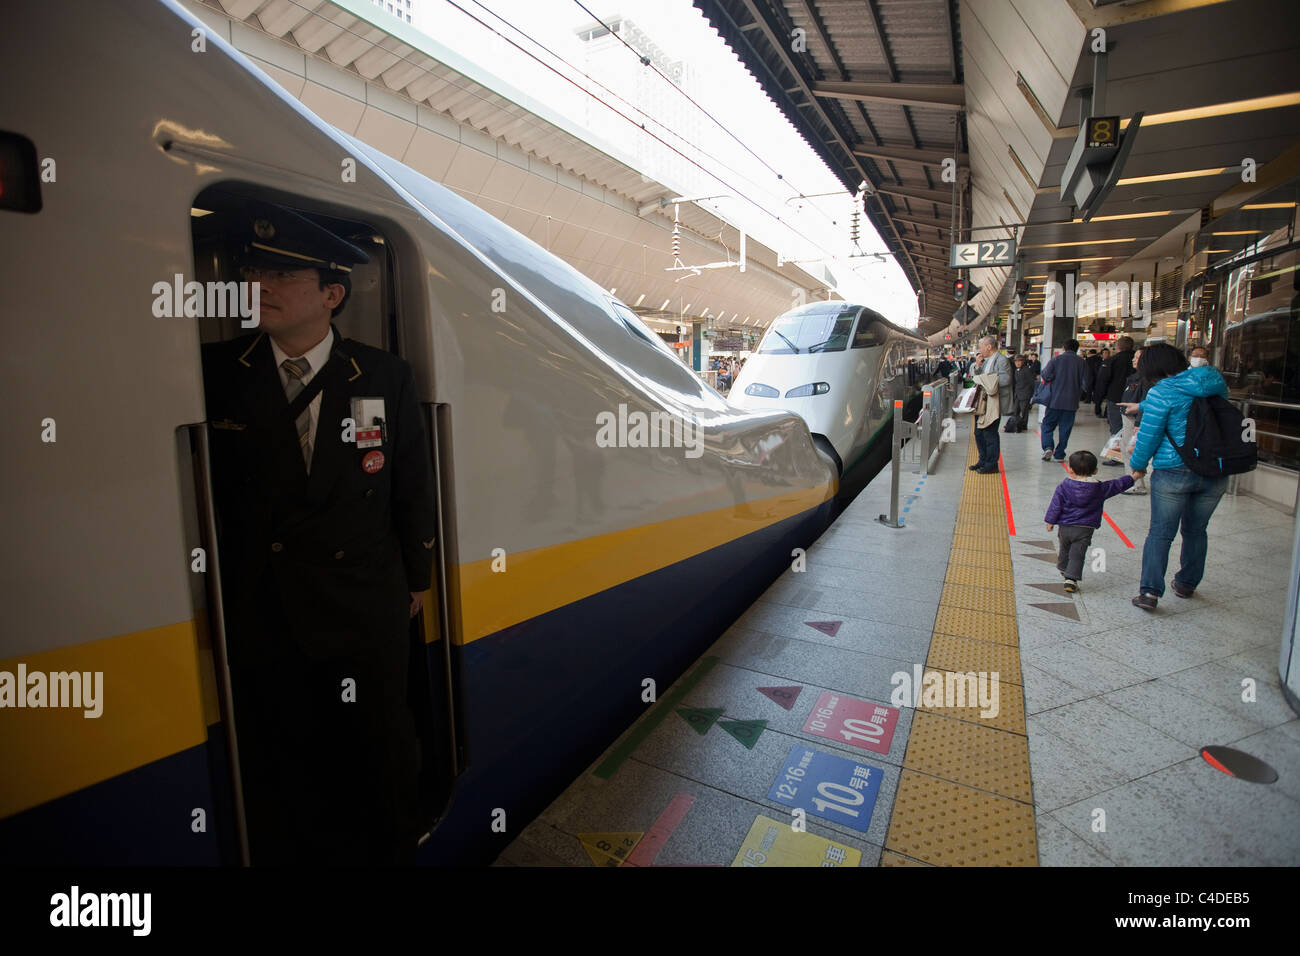 Bullet train, conductor, and passengers on platform at Tokyo station, Japan, Far East, Asia. - Stock Image